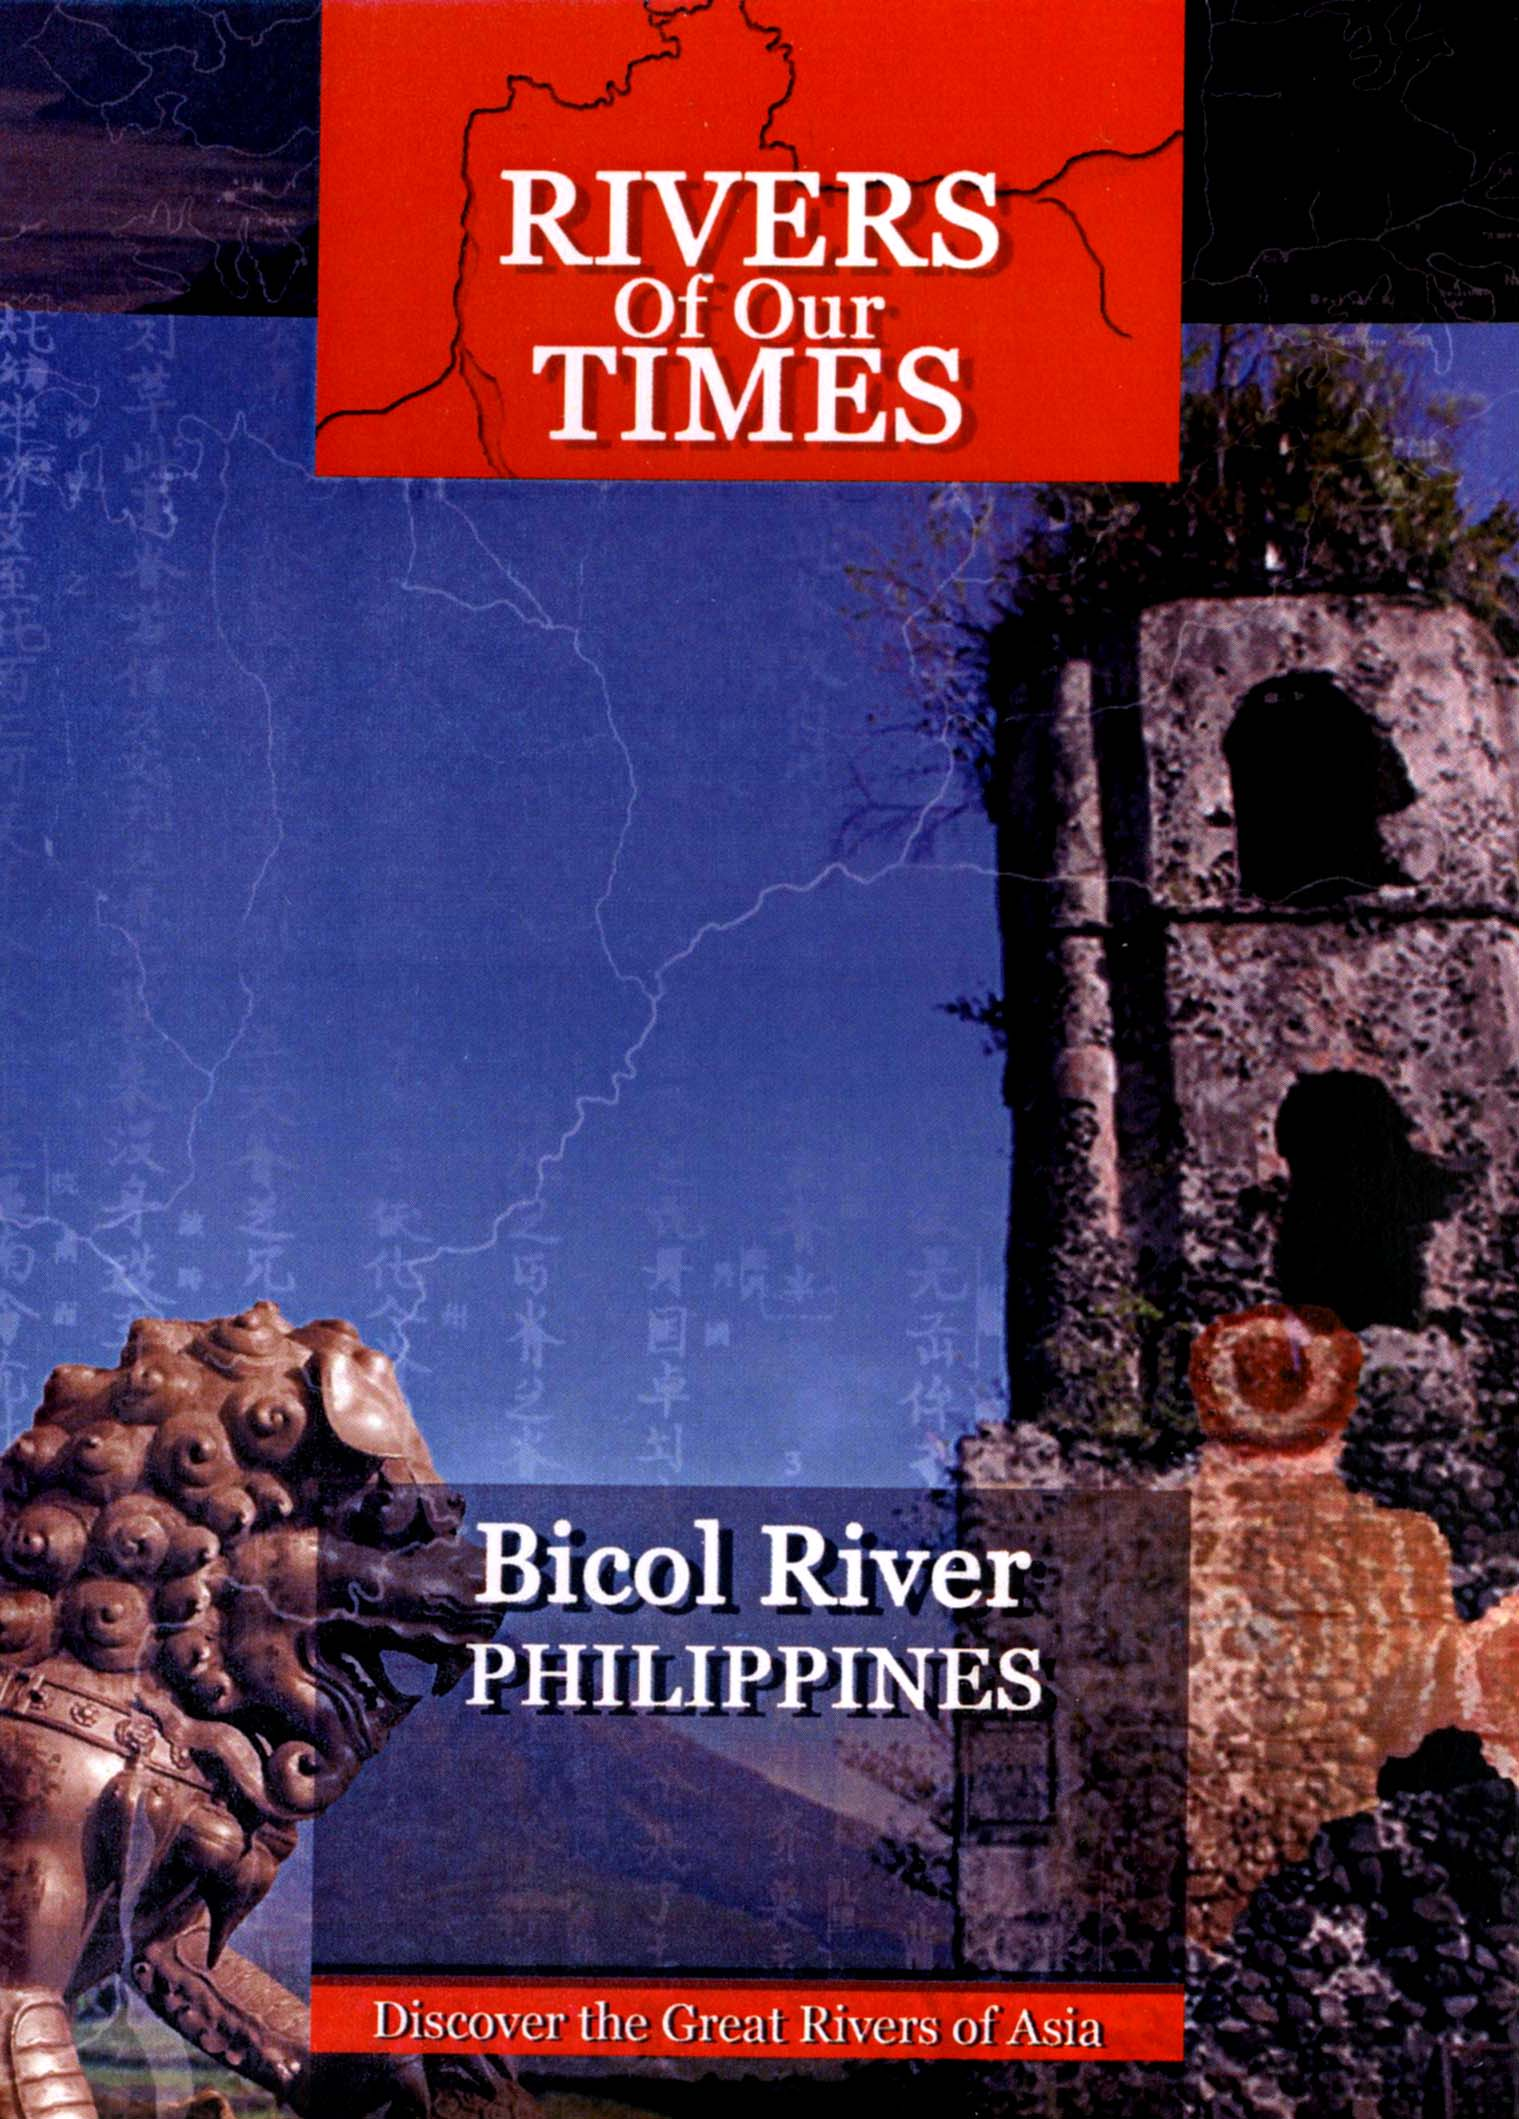 Rivers of Our Times: Bicol River - Philippines